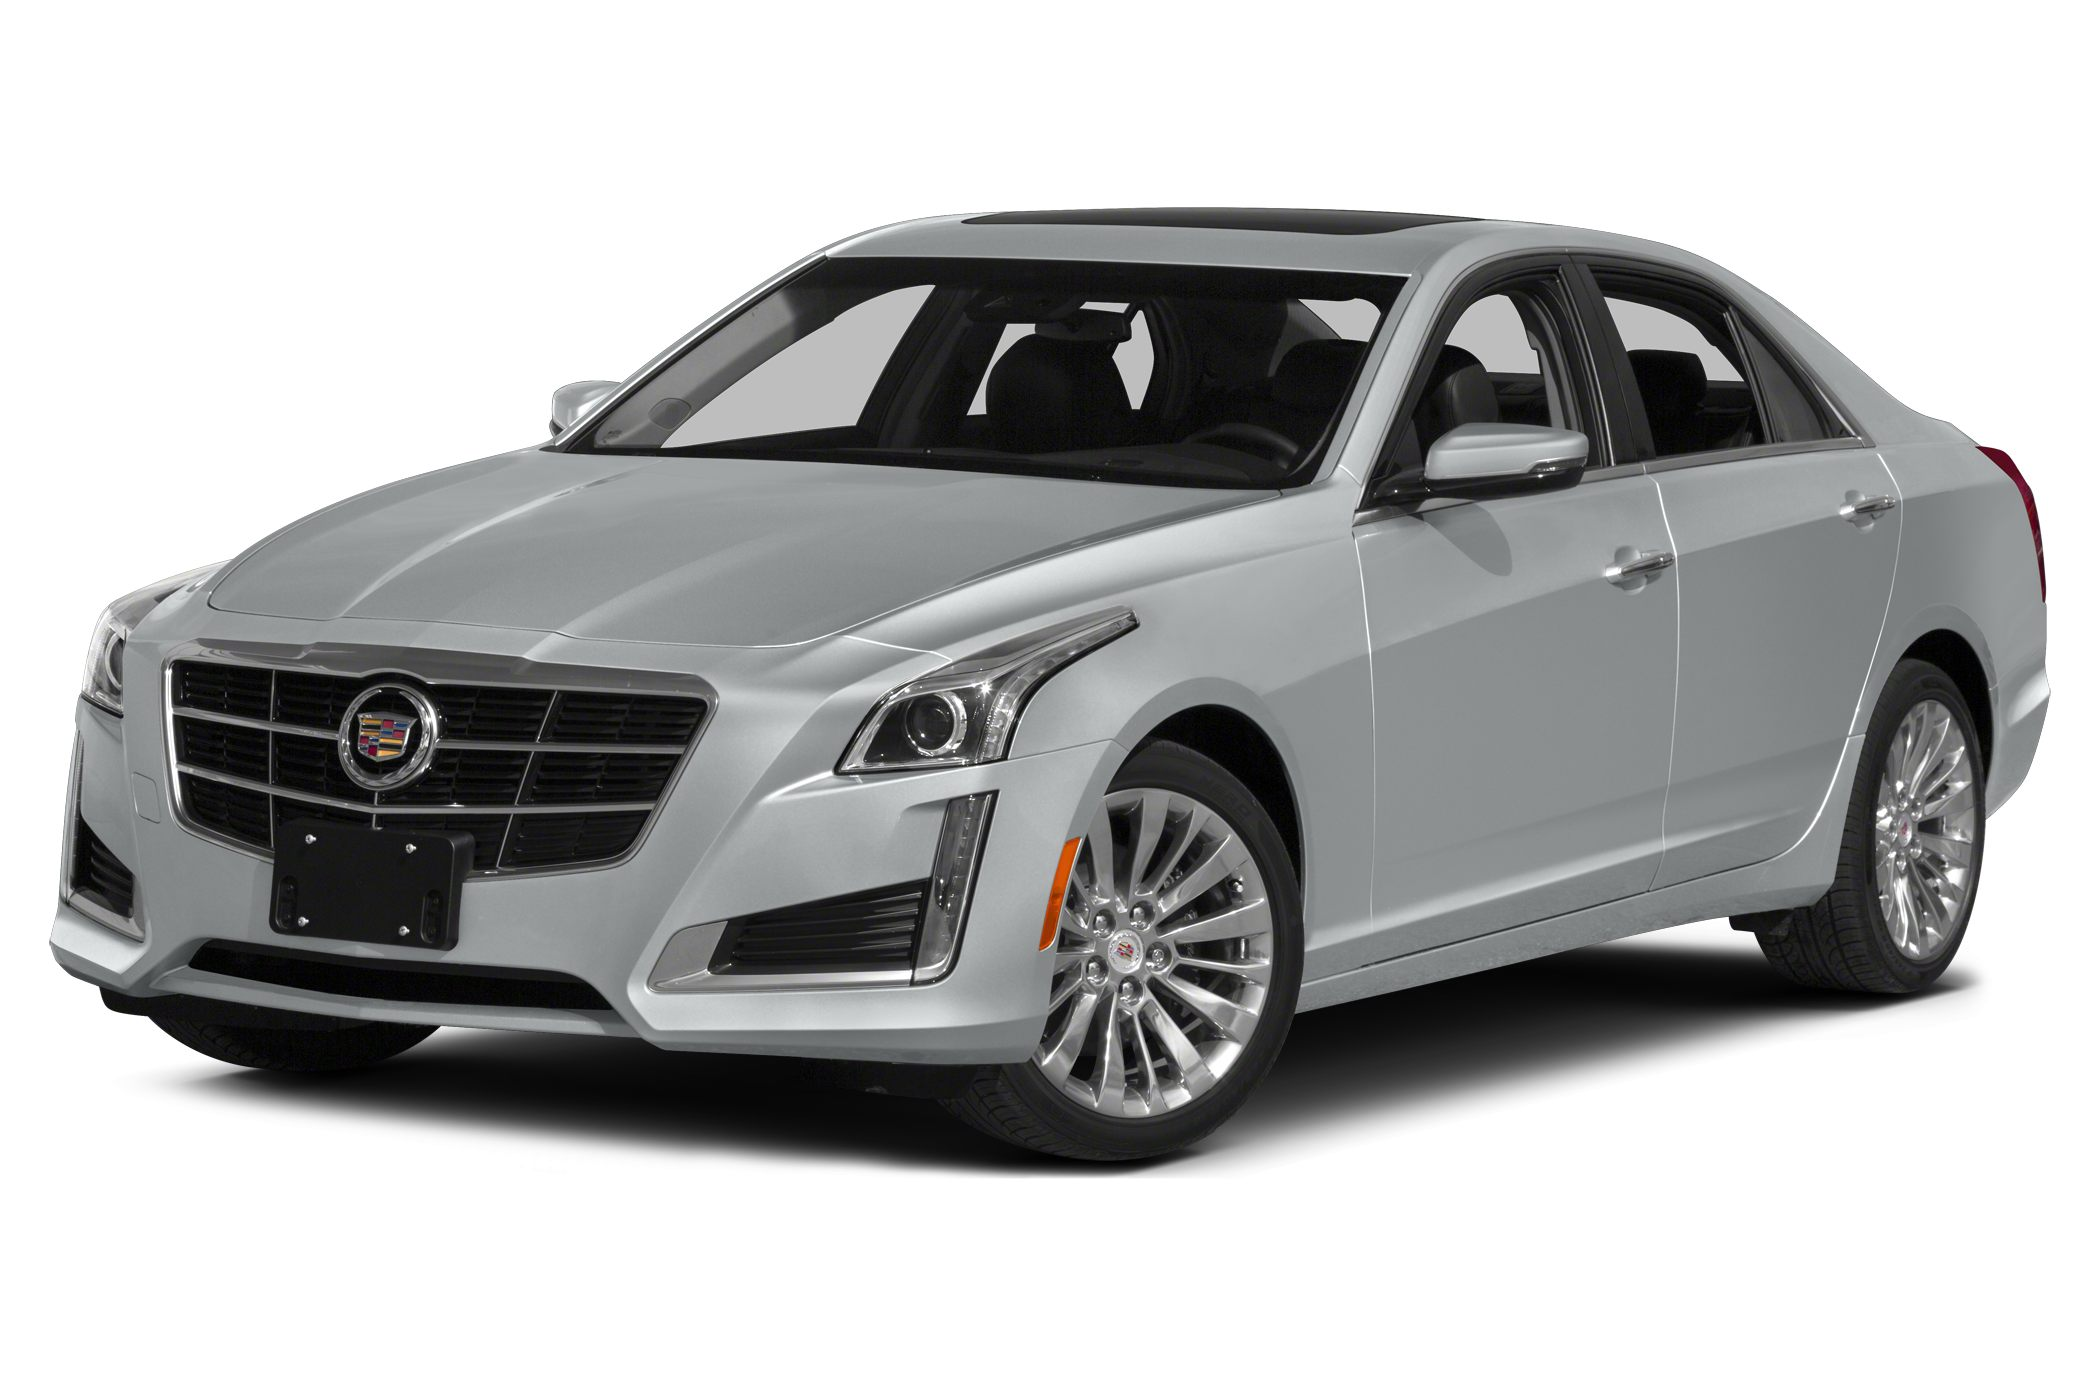 2014 Cadillac CTS 2.0L Turbo Sedan for sale in Brookhaven for $46,025 with 0 miles